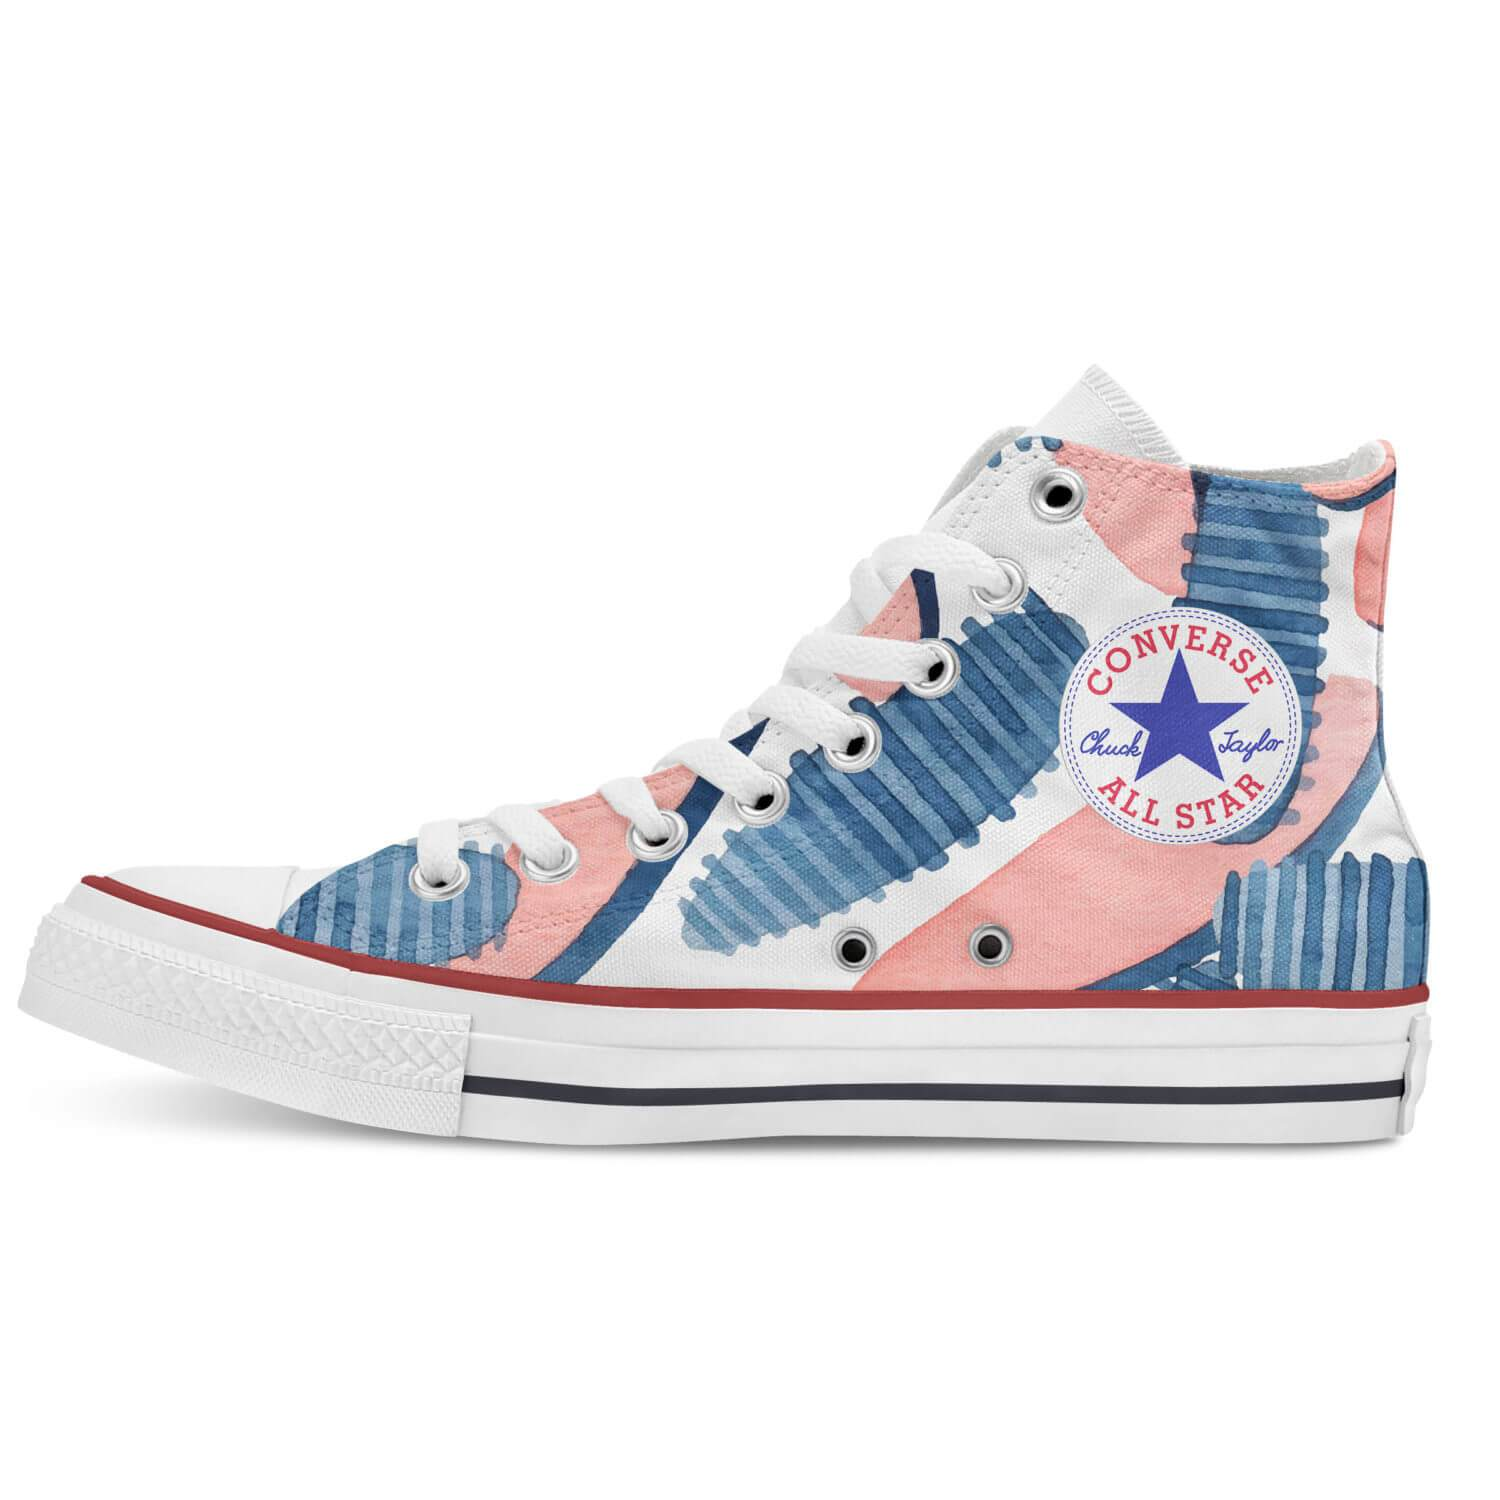 Personalized Converse Chuck Taylor All Star High Top (4618787684457)